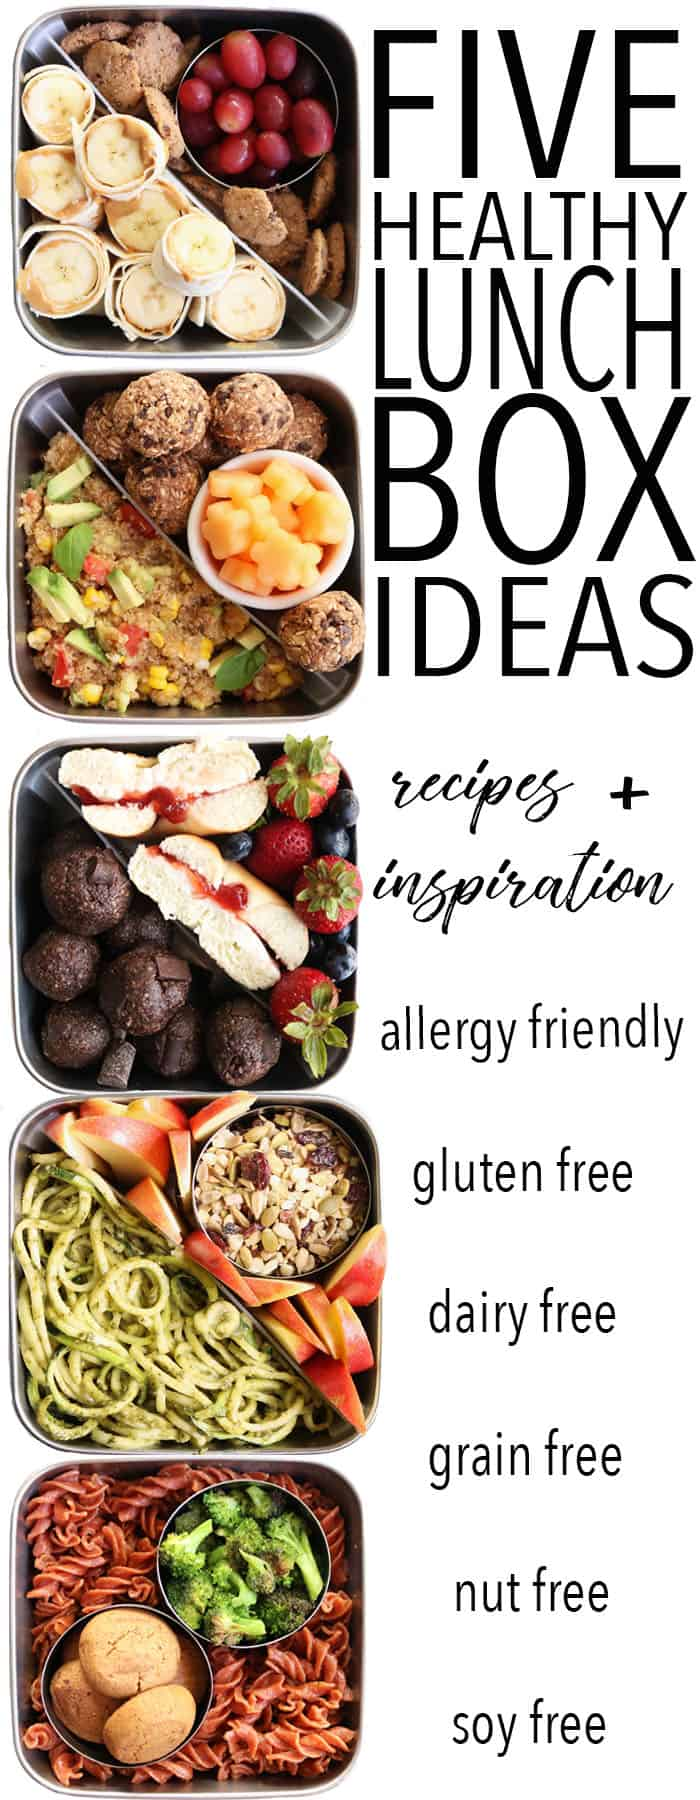 Ditch your boring sandwich and try these FIVE Fun and Healthy Lunch Box Ideas! They're all gluten free, dairy free, and allergy friendly!! thetoastedpinenut.com #glutenfree #dairyfree #allergyfriendly